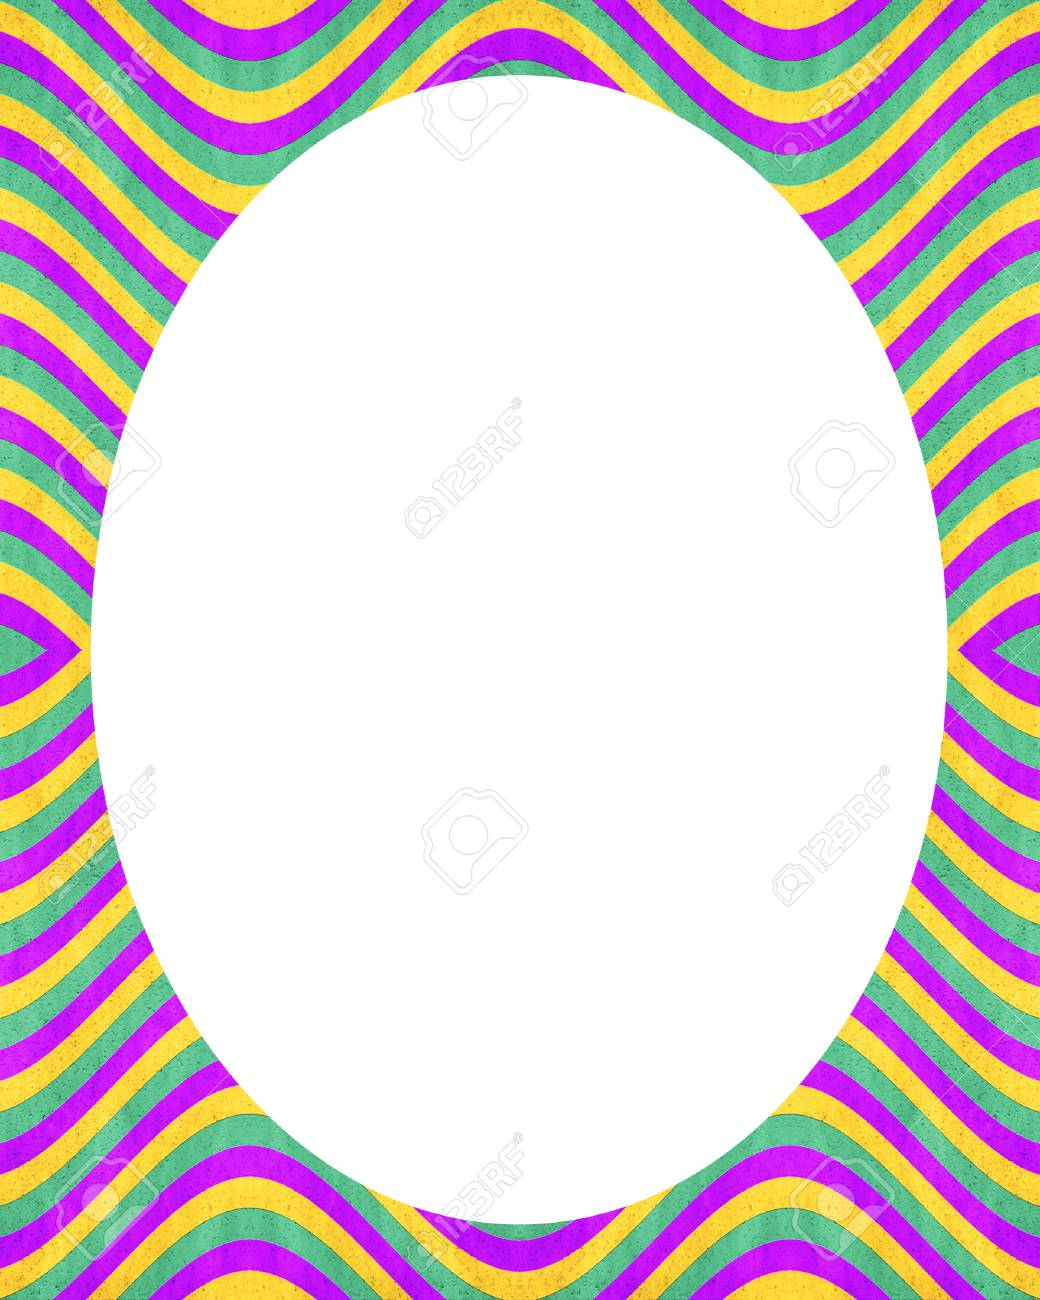 white circle frame background with decorated stripe design borders